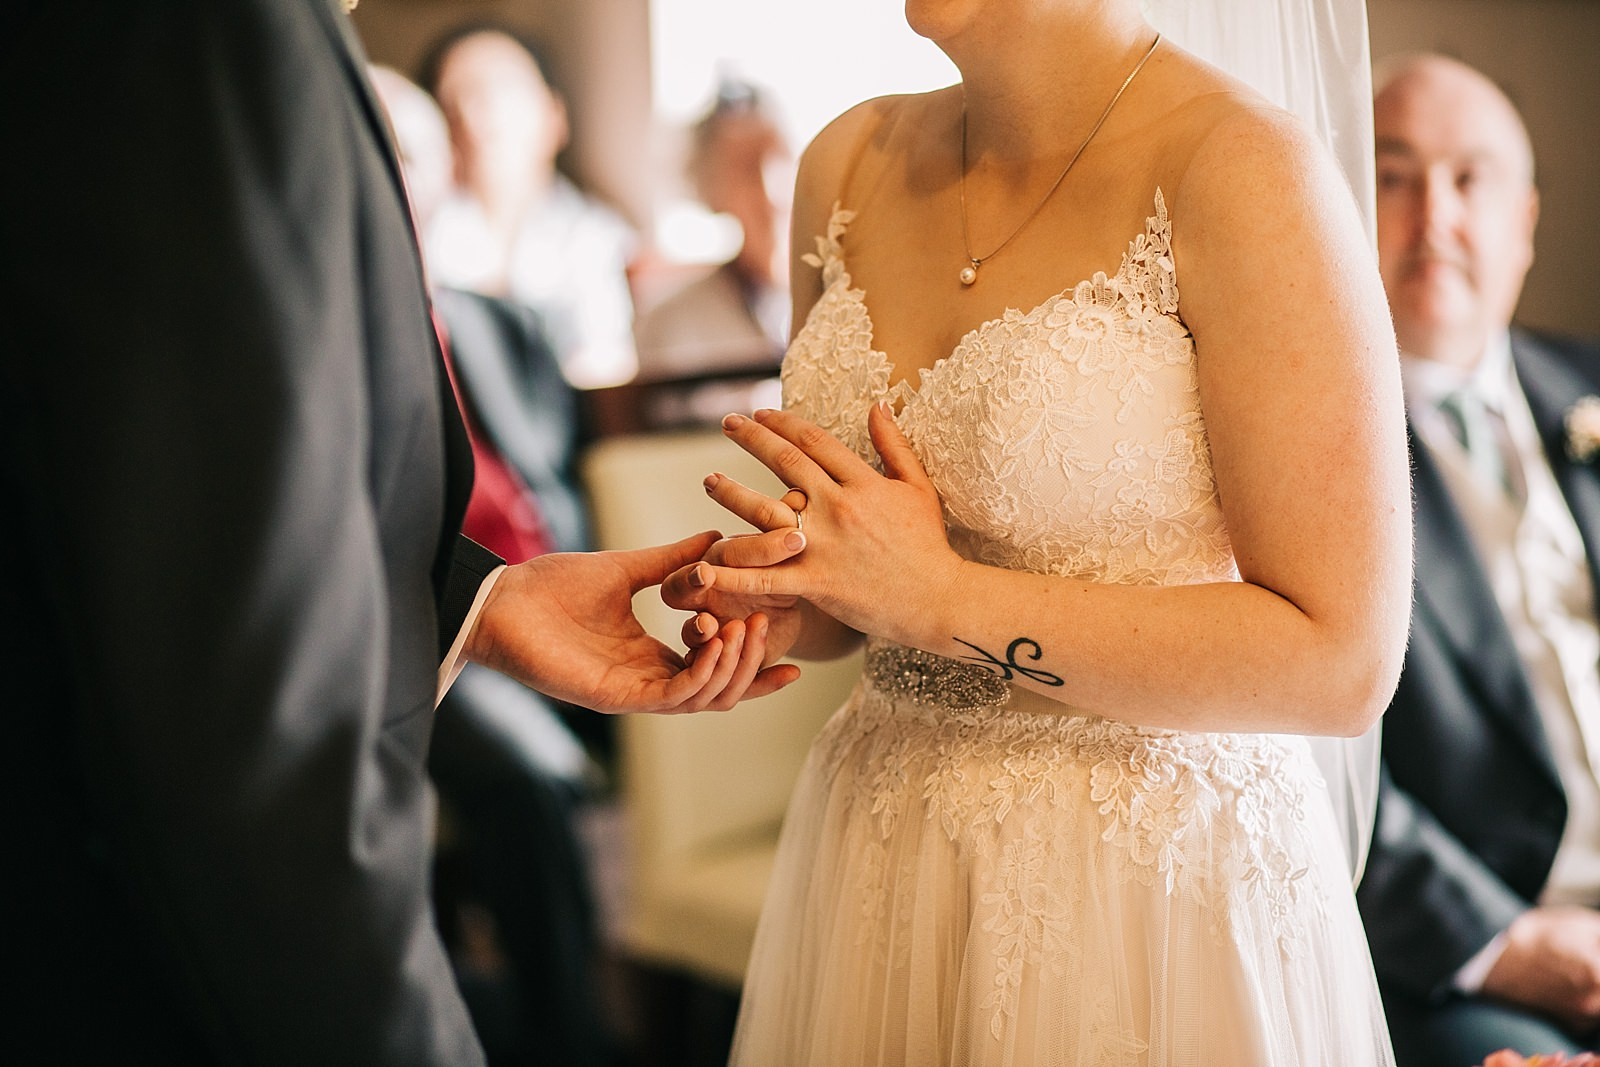 photo of bride trying on wedding ring during ceremony